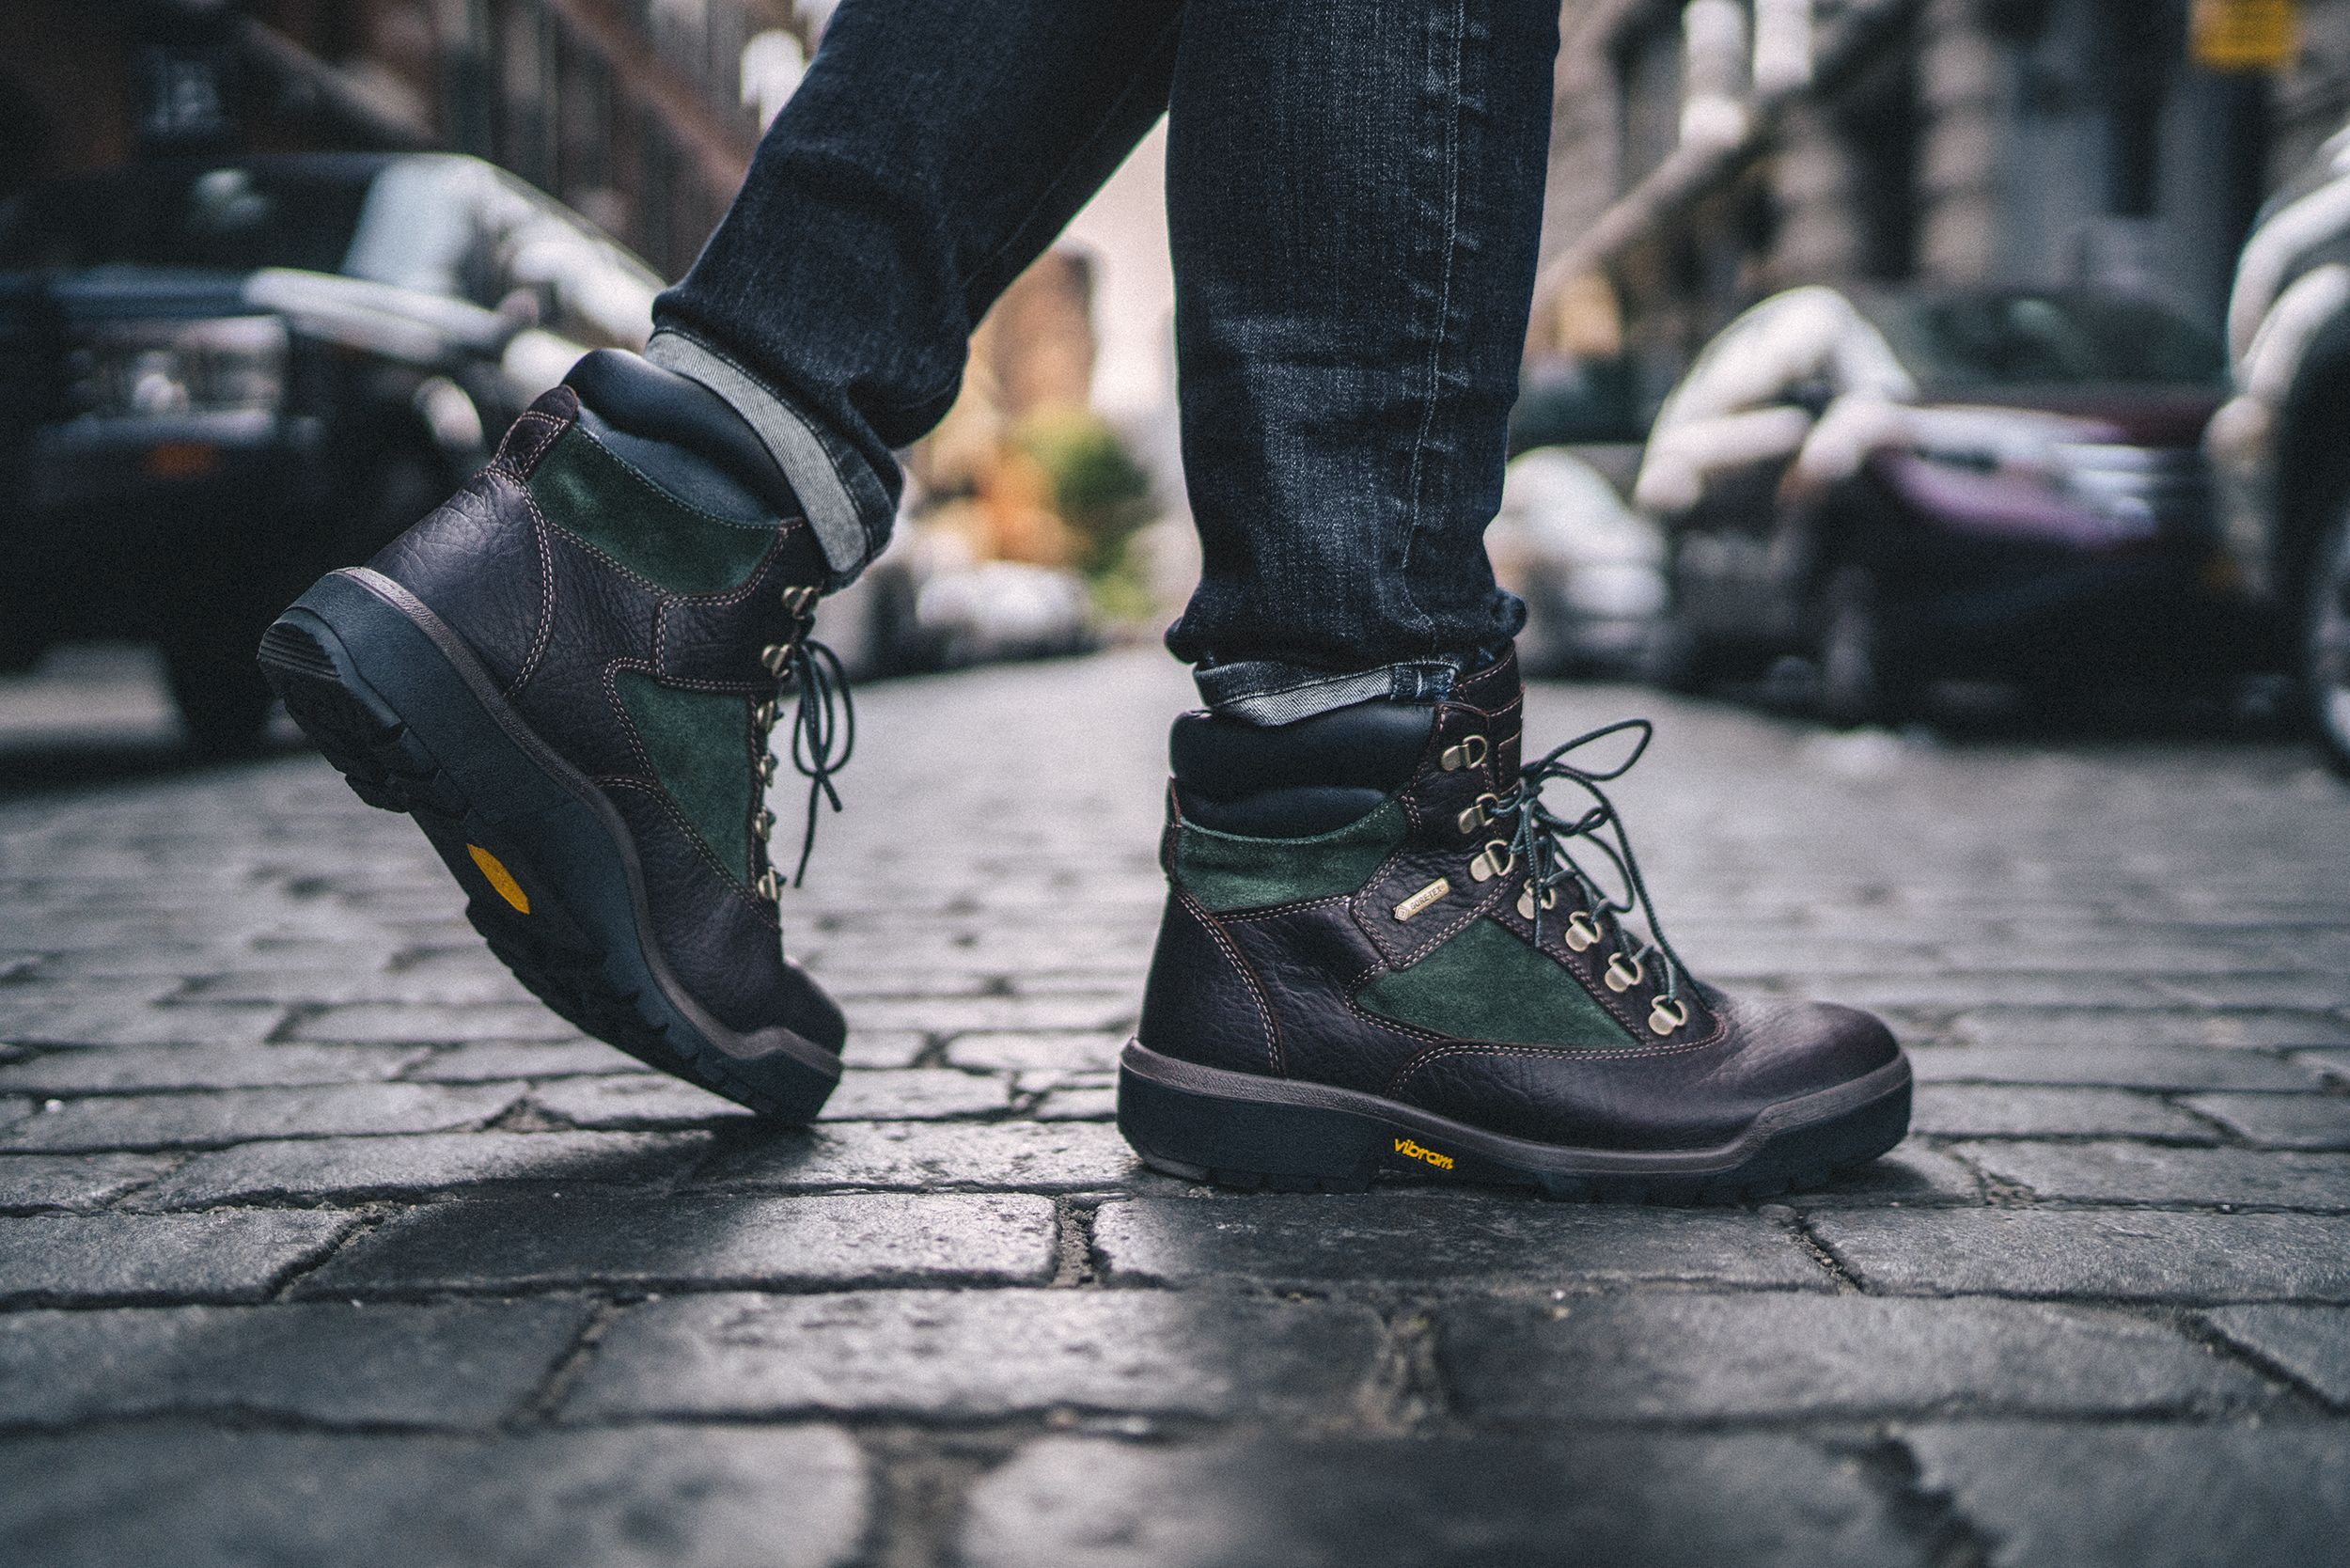 32b84829def The Limited Release Hazel Highway Gortex Field Boot. | Limited ...